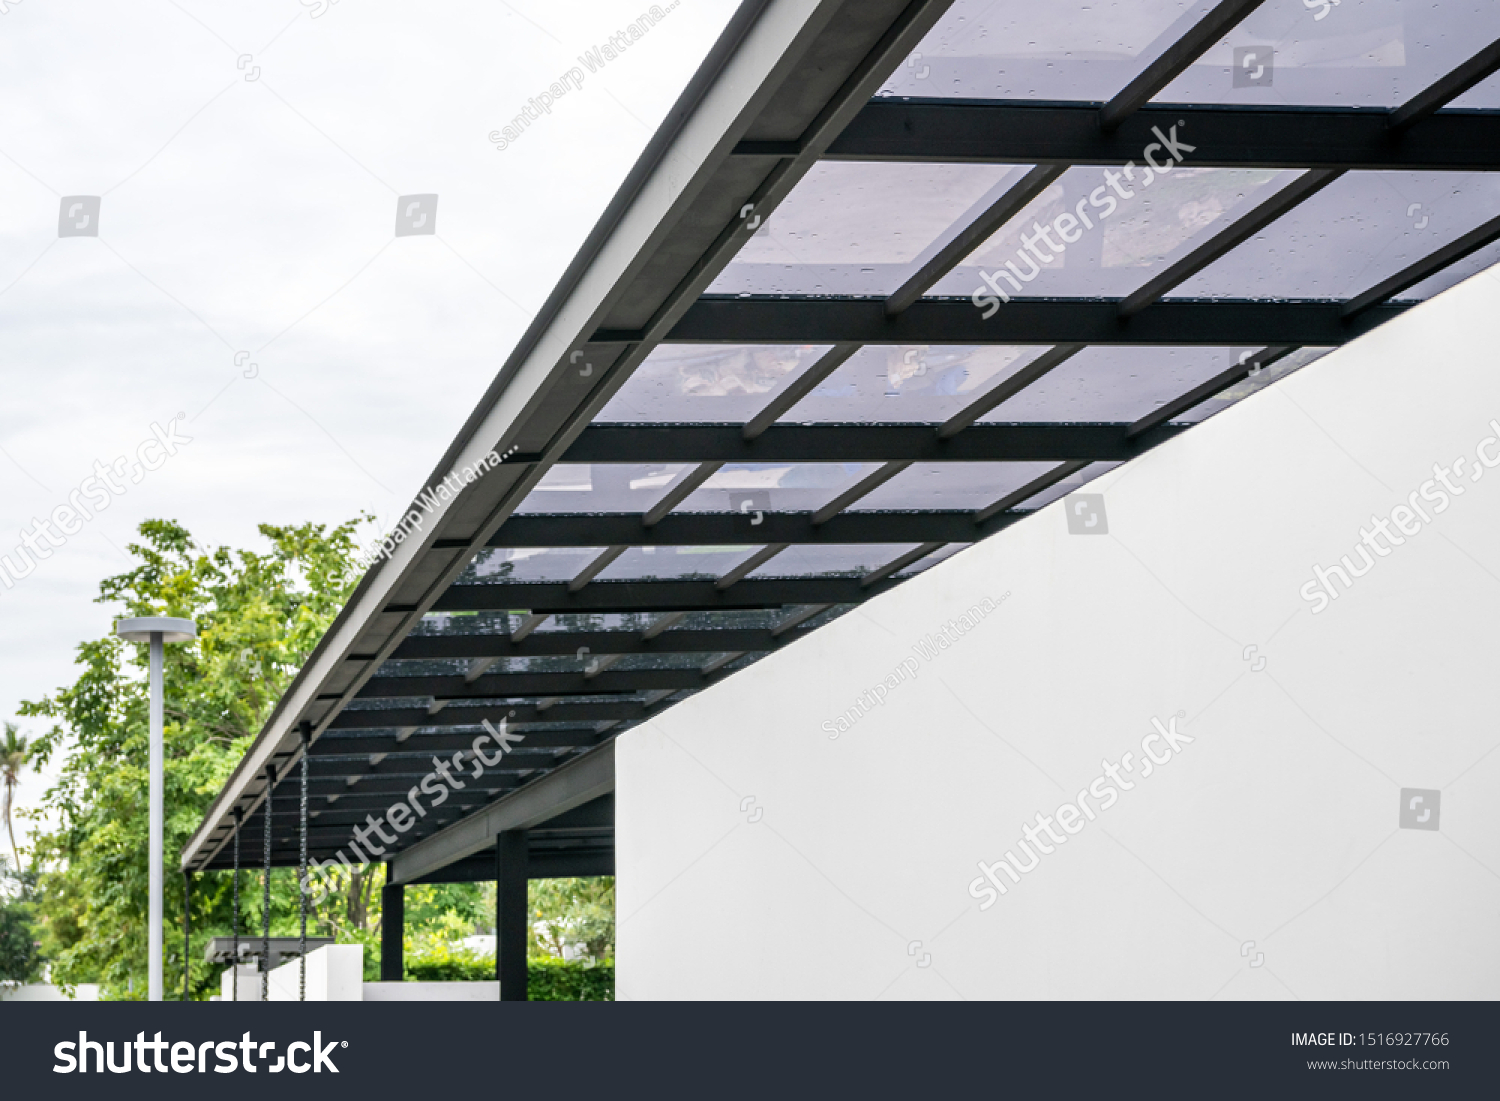 https www shutterstock com image photo acrylic transparent roof sheeting close outdoor 1516927766